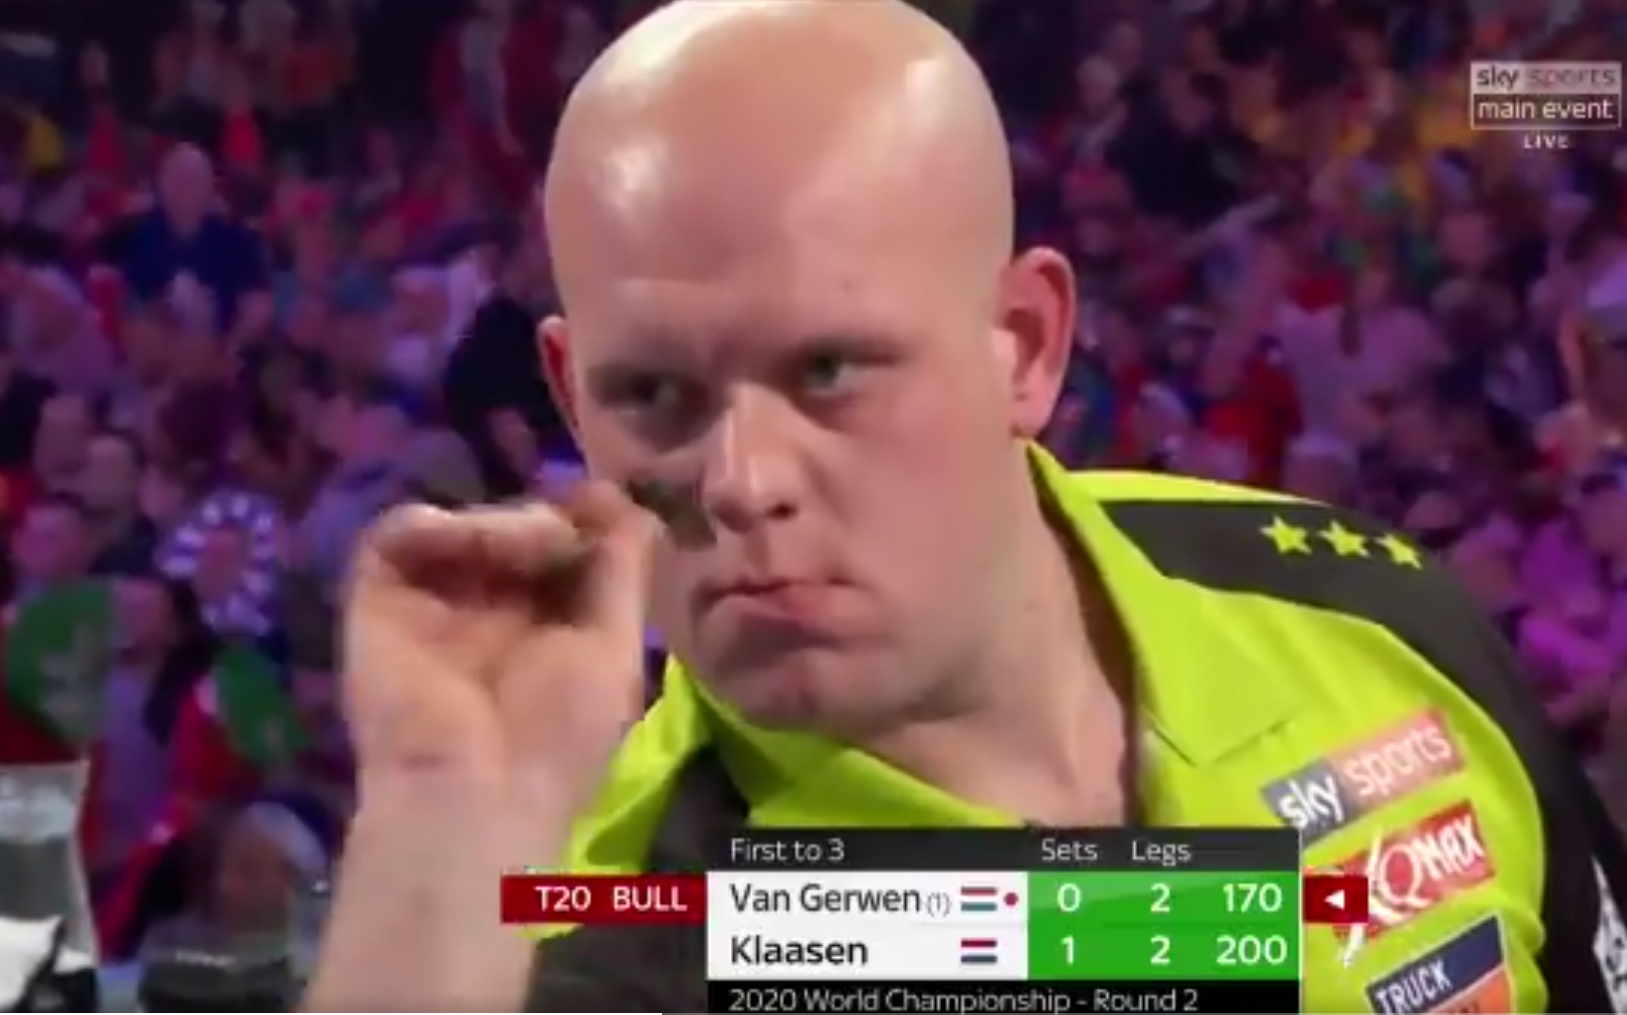 VIDEO: Michael van Gerwen Hits 170-Check Out At Crucial Moment